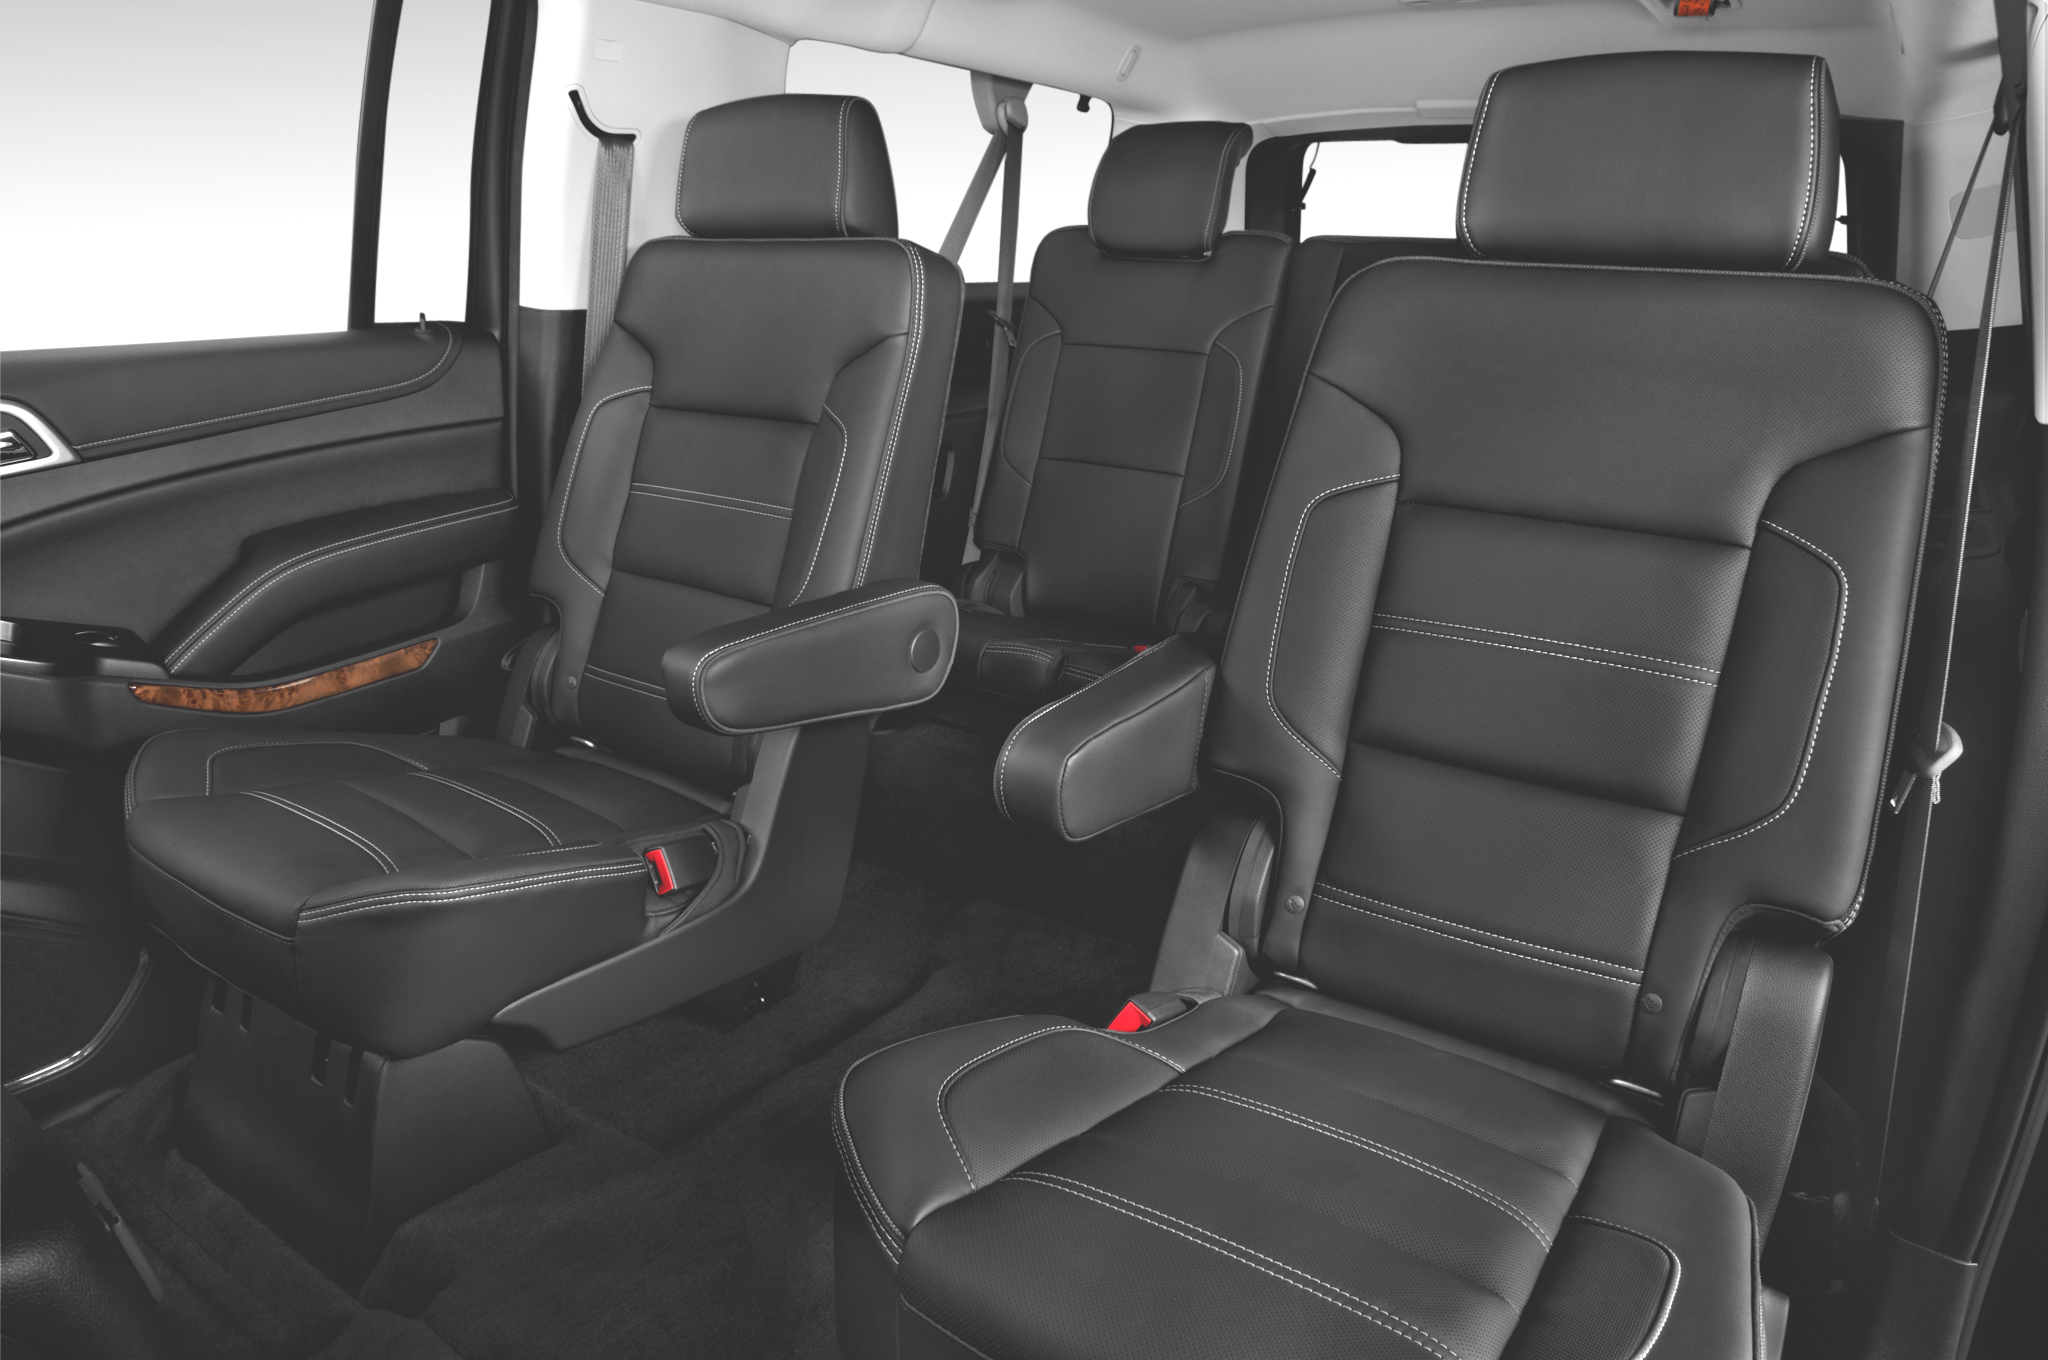 GMC Yukon Denali Car Services Minneapolis MN / St Paul Minnesota Black Interior Seating View